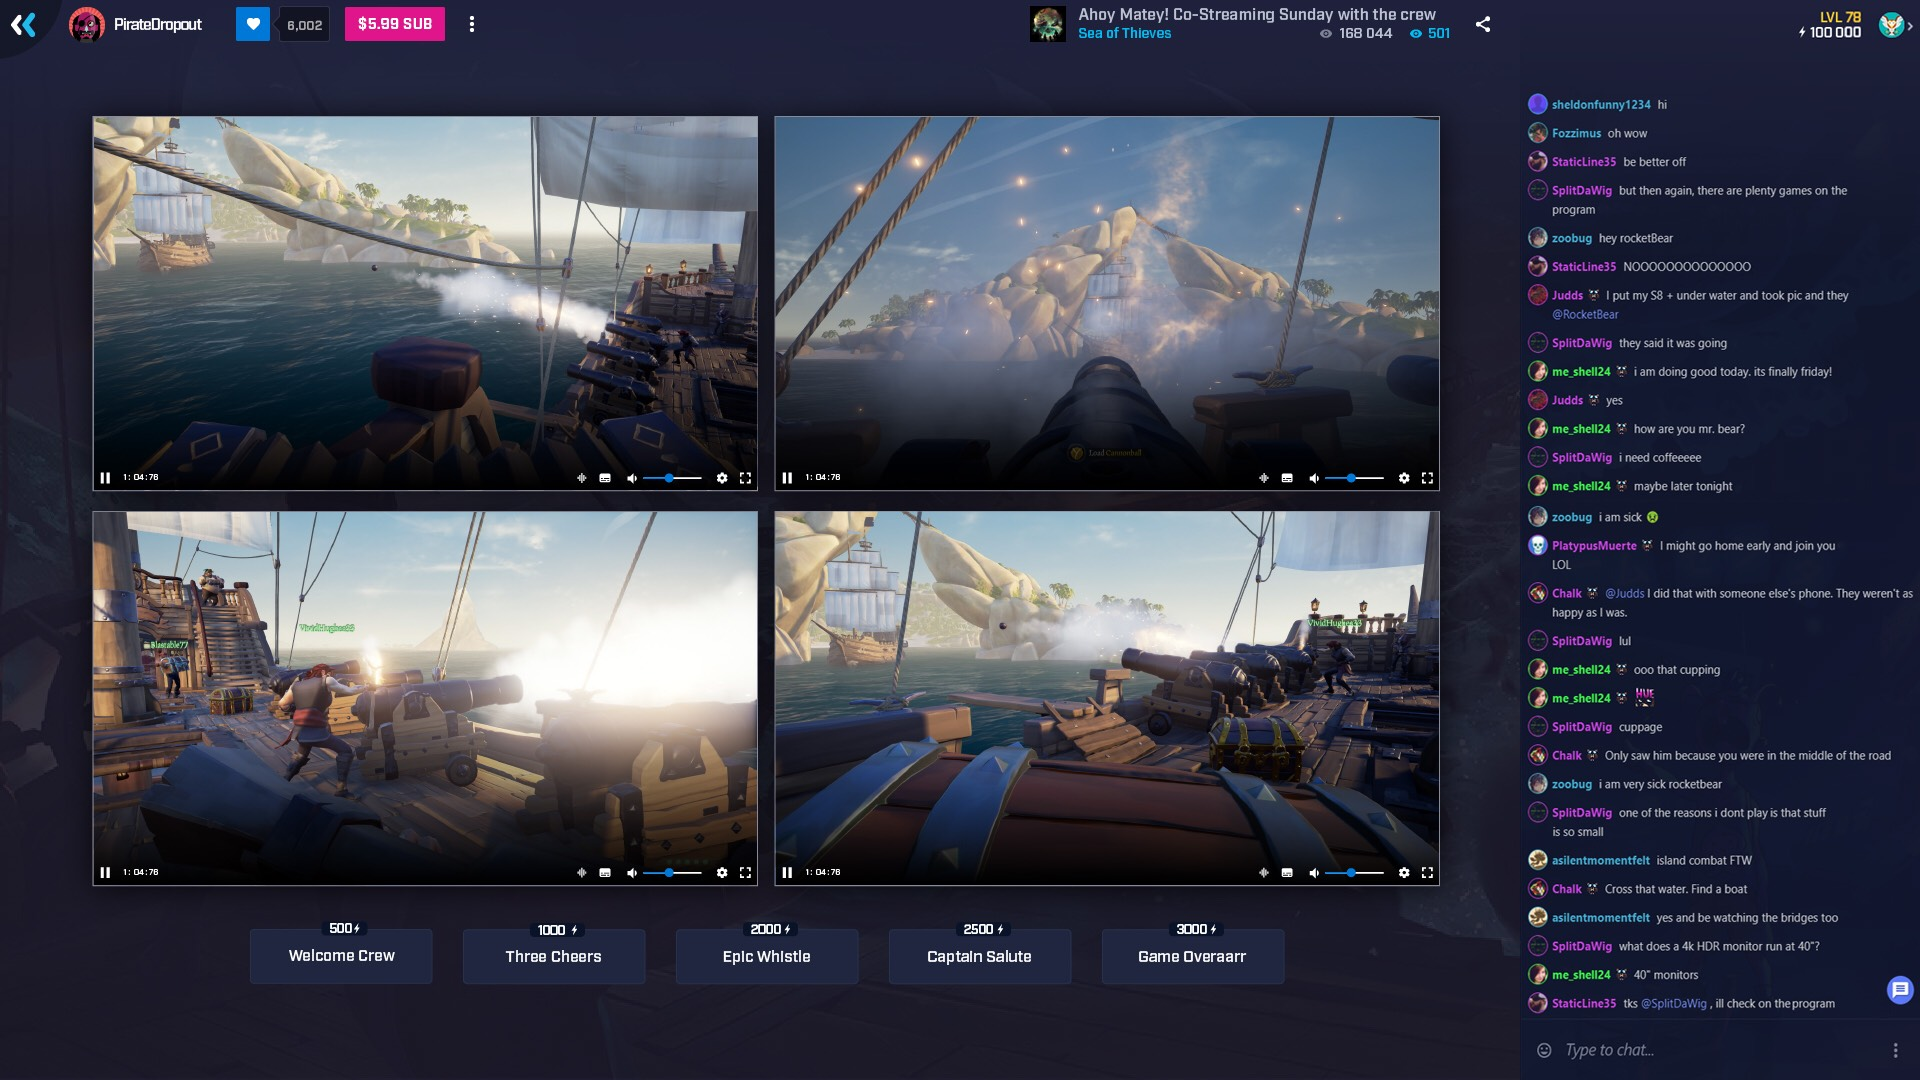 Microsoft renames Beam to Mixer, adds new game streaming features